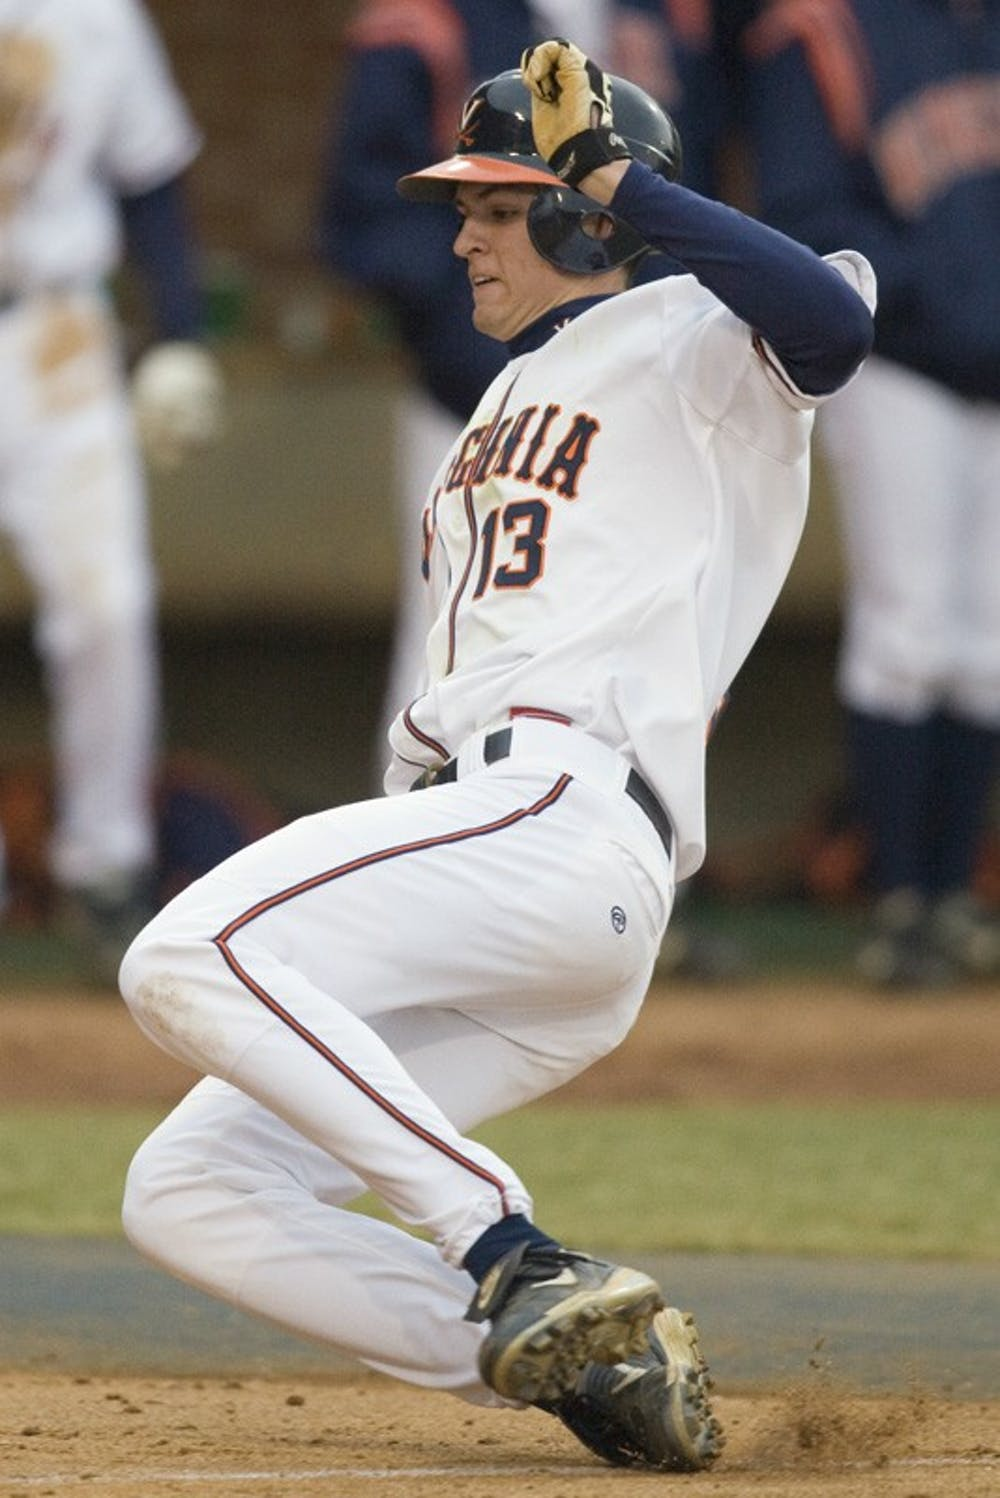 Virginia Cavaliers OF Jarrett Parker (13) slides in to home to score a run.  The #16 ranked Virginia Cavaliers baseball team defeated the Siena Saints 17-2 at the University of Virginia's Davenport Field in Charlottesville, VA on February 29, 2008.